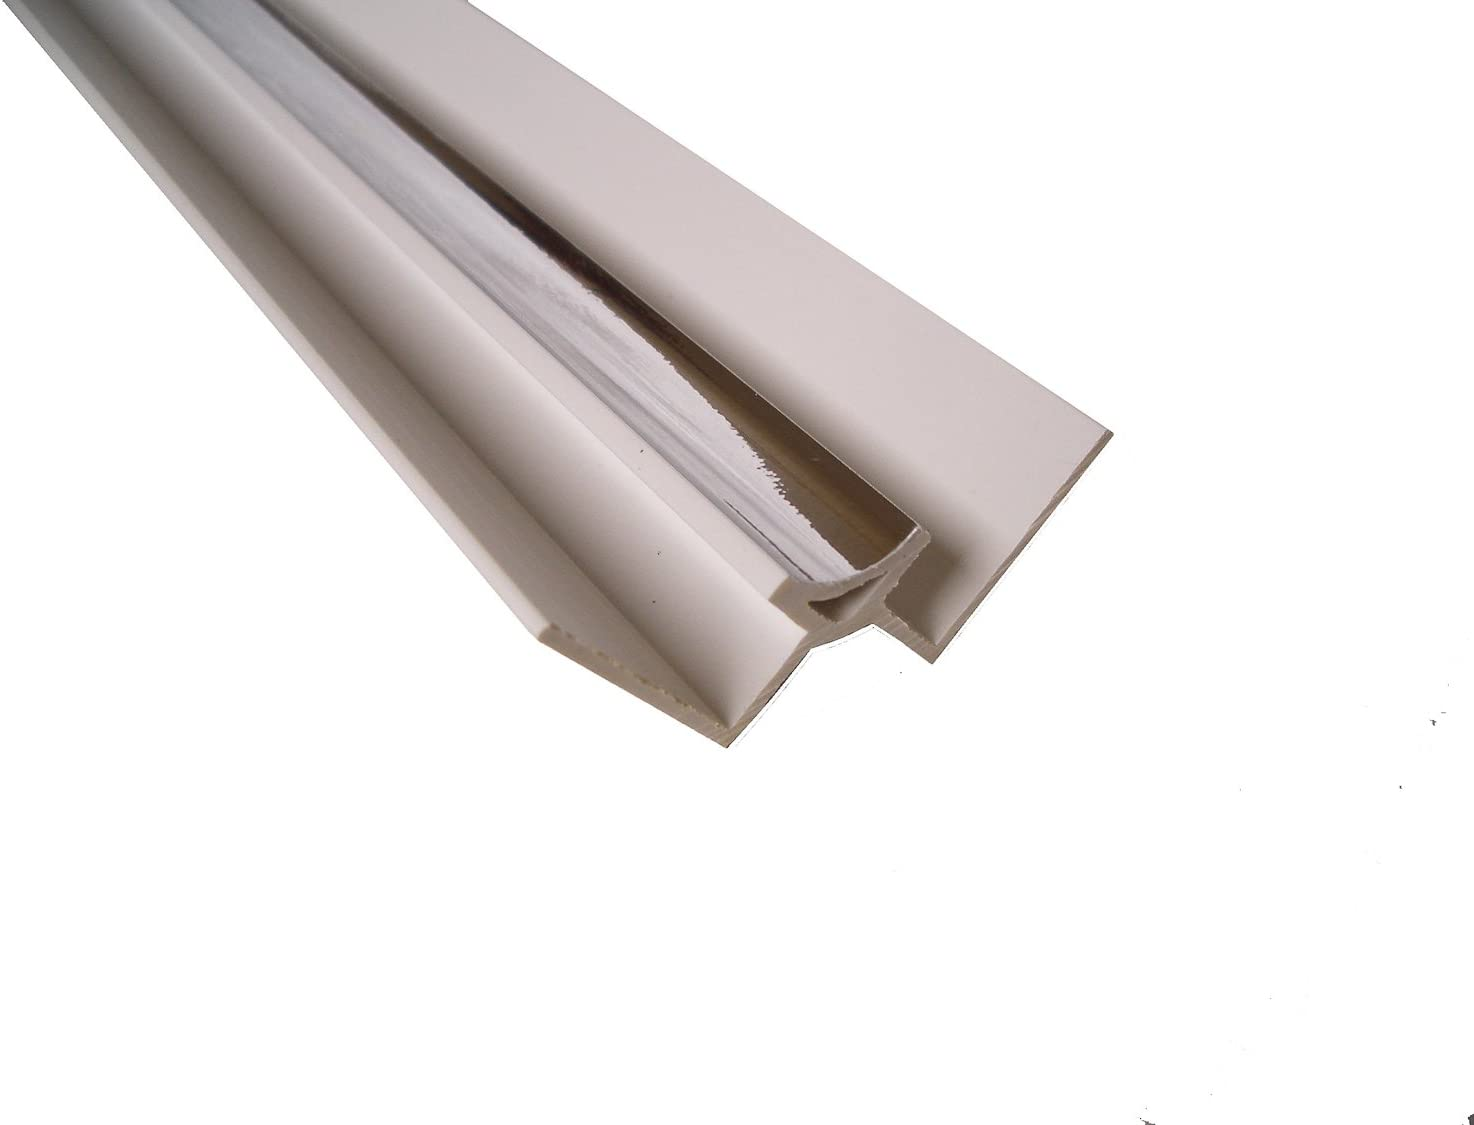 Chrome Panel Trim Perfect for Bathroom Kitchen Shower Wall PVC Cladding Panels-8mm Internal Corner Edging Trim-100/% Waterproof-Use with Claddtech Adhesive